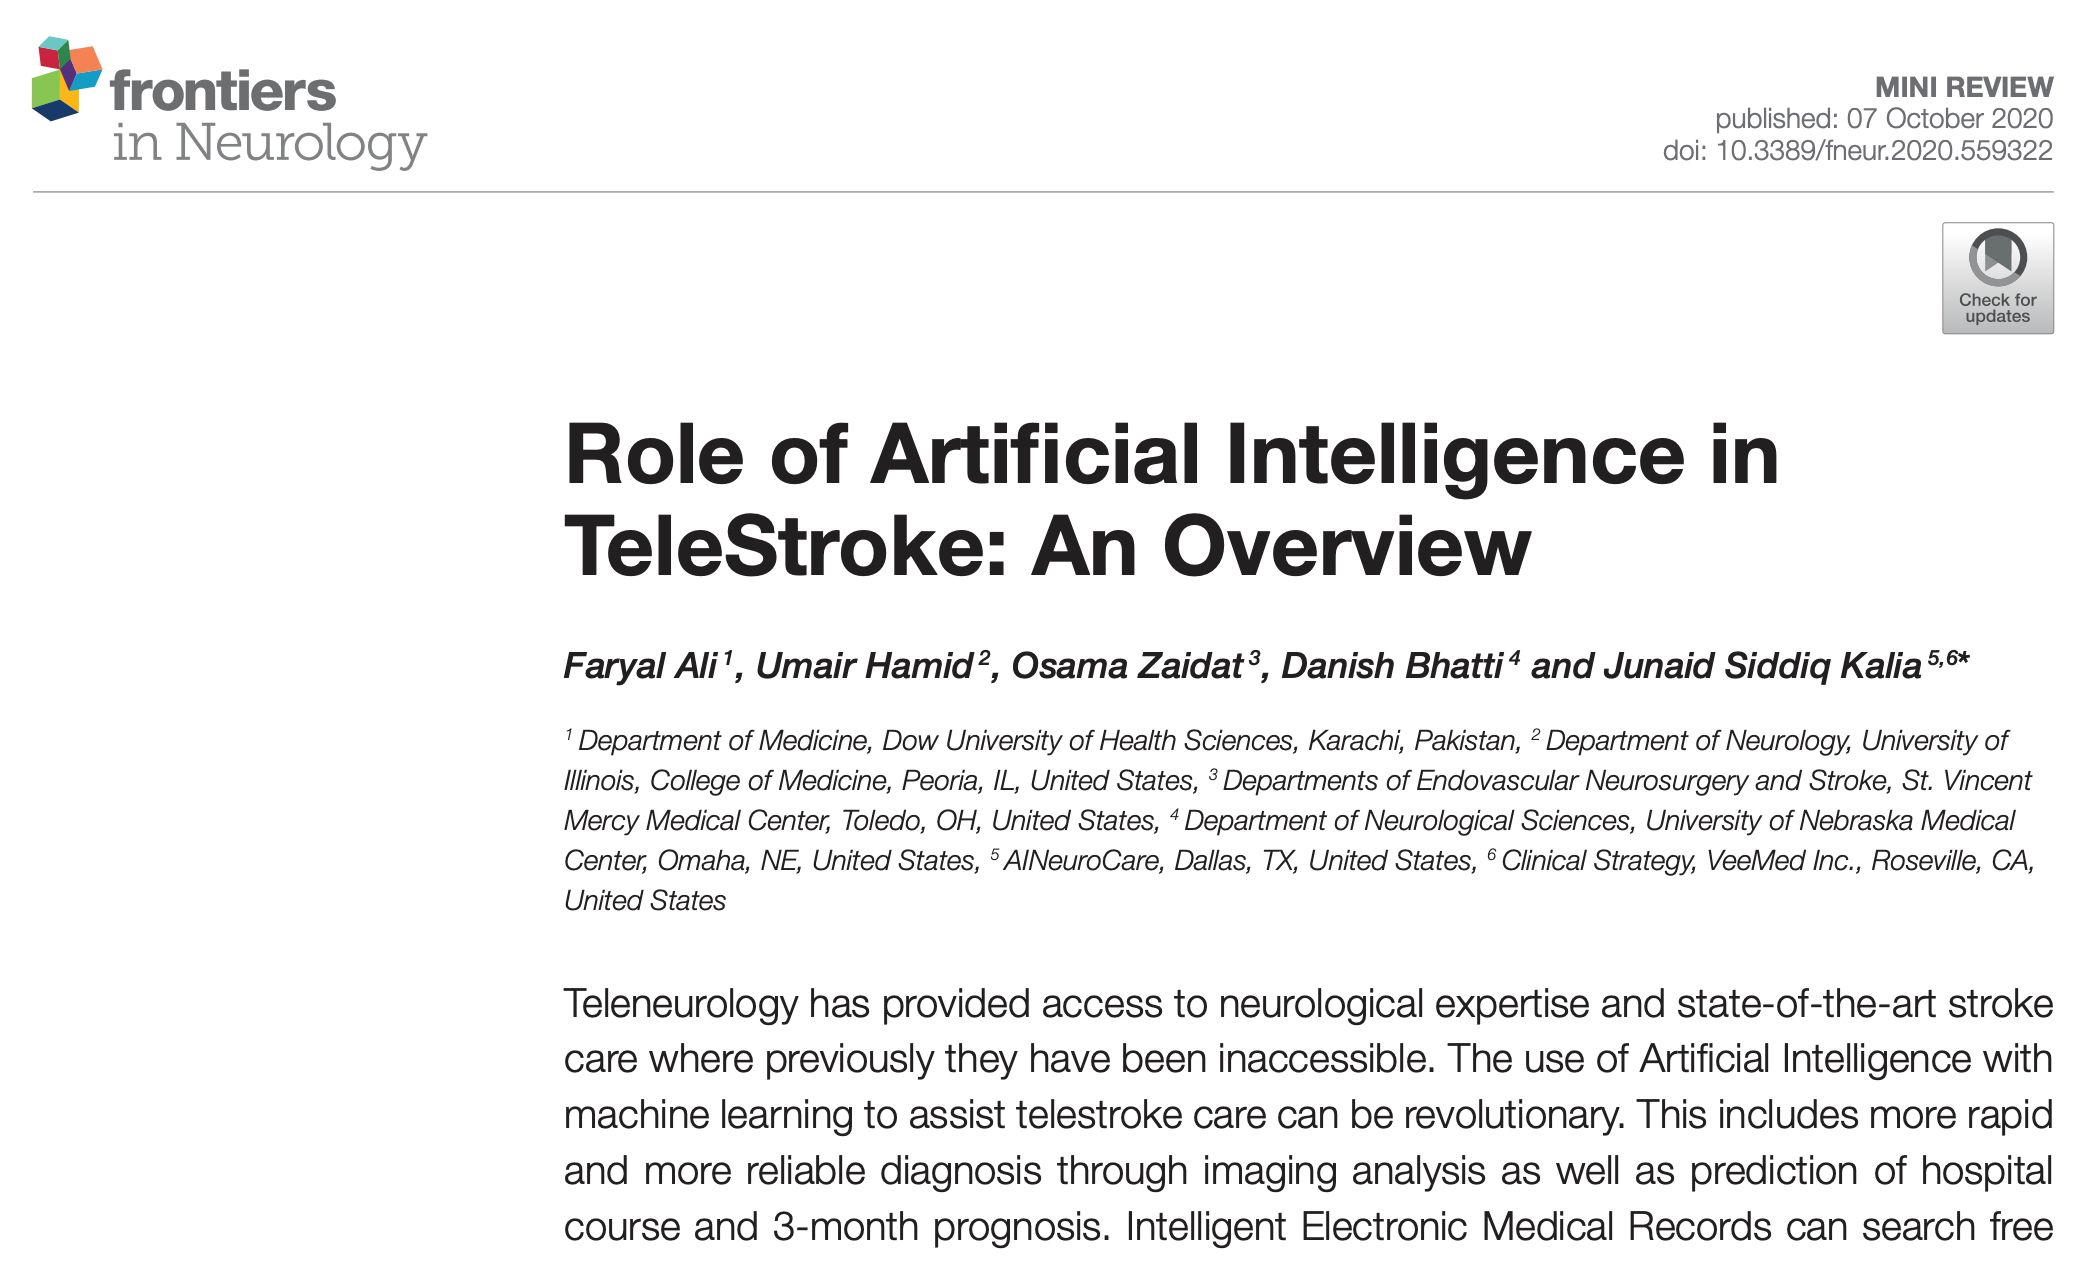 Role of Artificial Intelligence in TeleStroke: An Overview